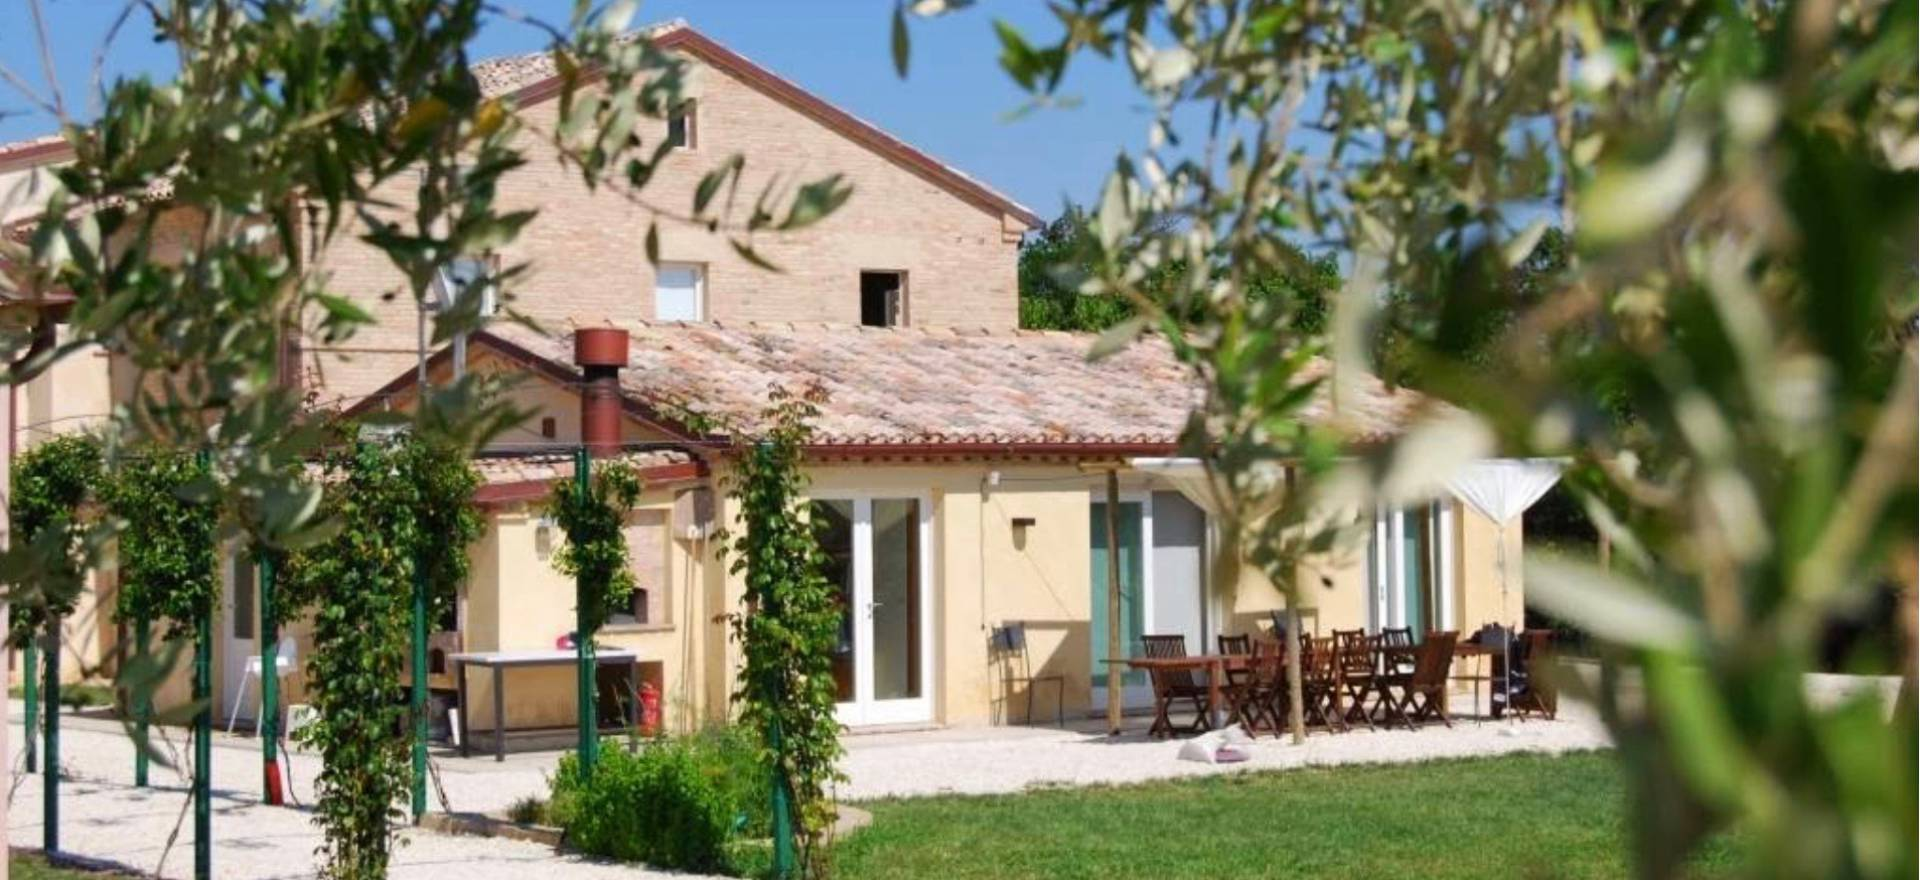 Agriturismo Marche Agriturismo Marche, beautiful rooms and welcoming